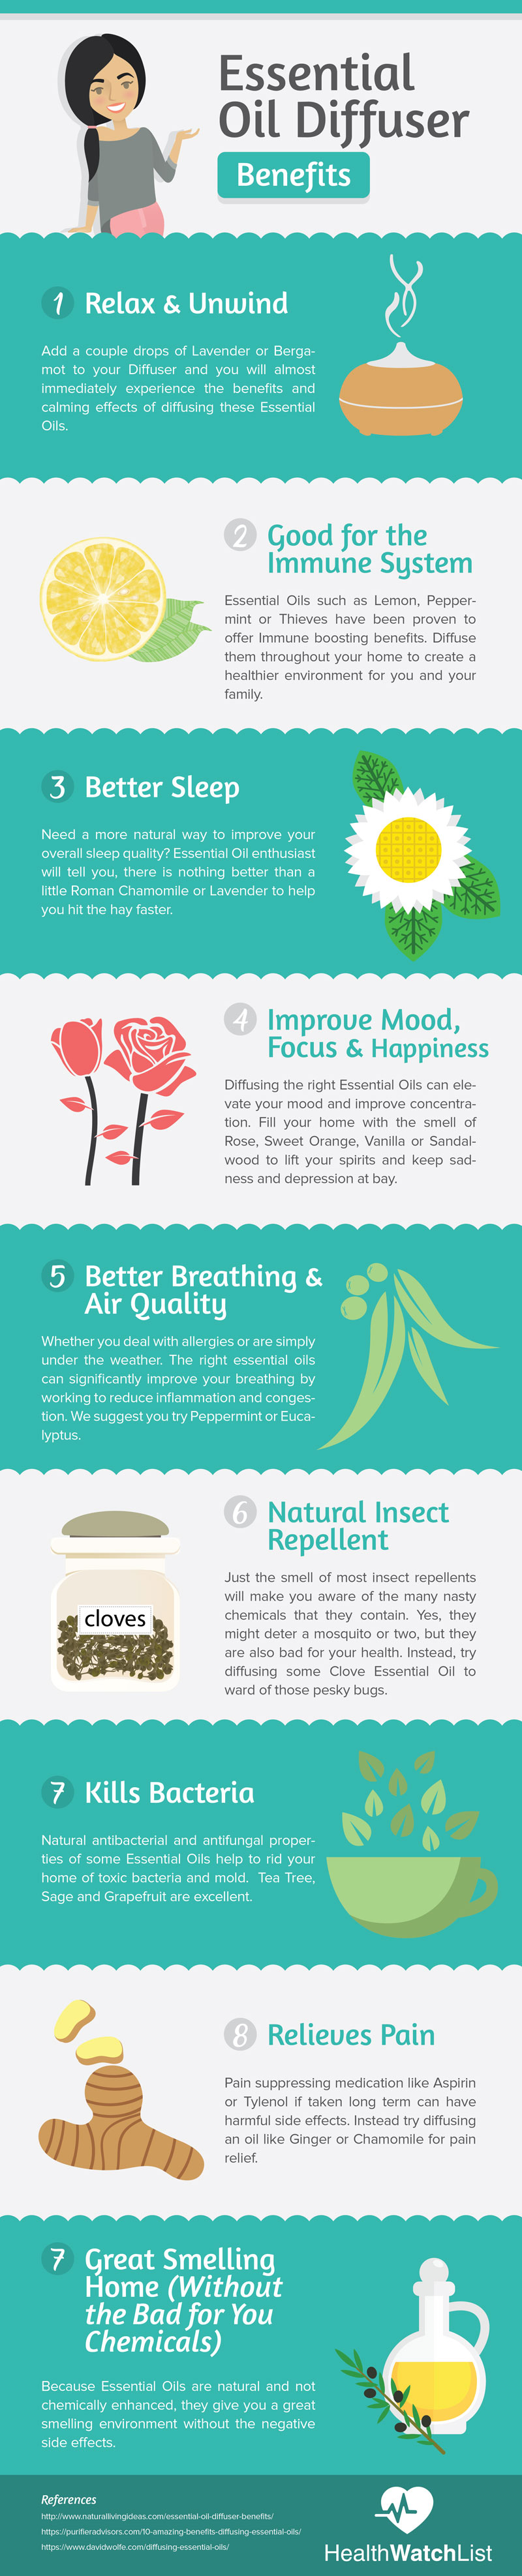 Essential Oil Diffuser Benefits